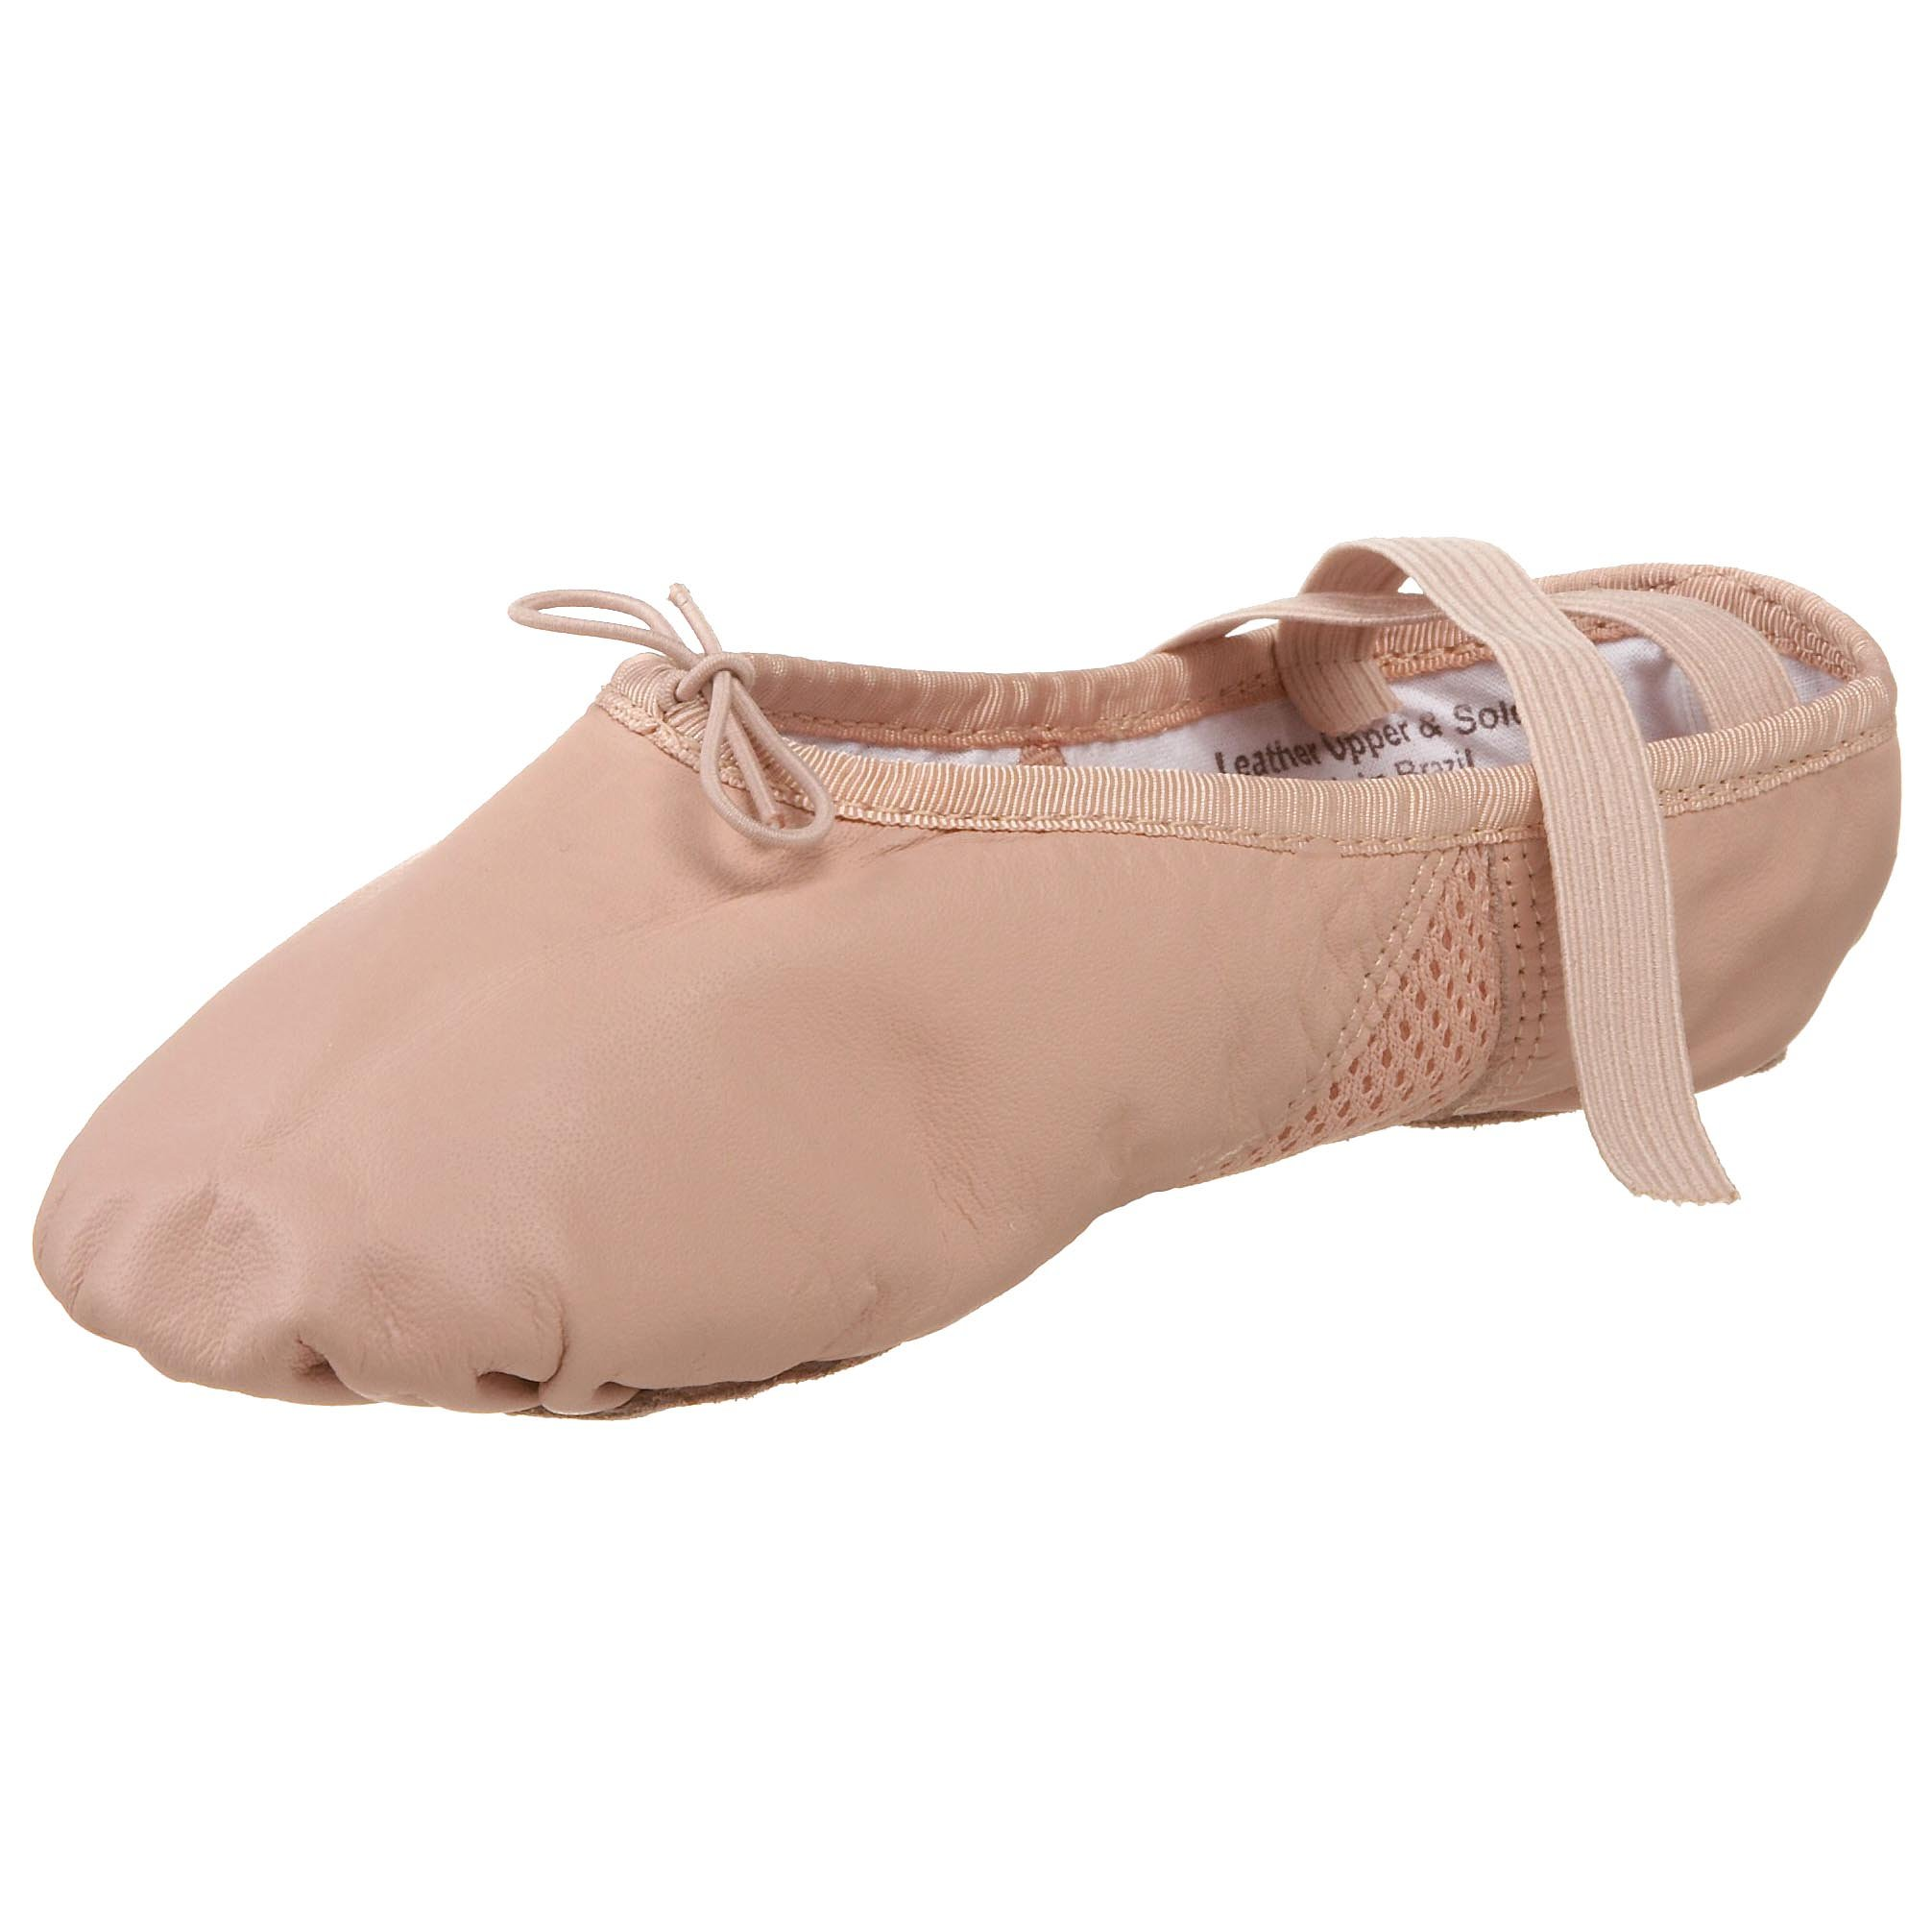 Leo's Unisex 105 Airabesque Leather,Pink,4.5 M US by Leo's